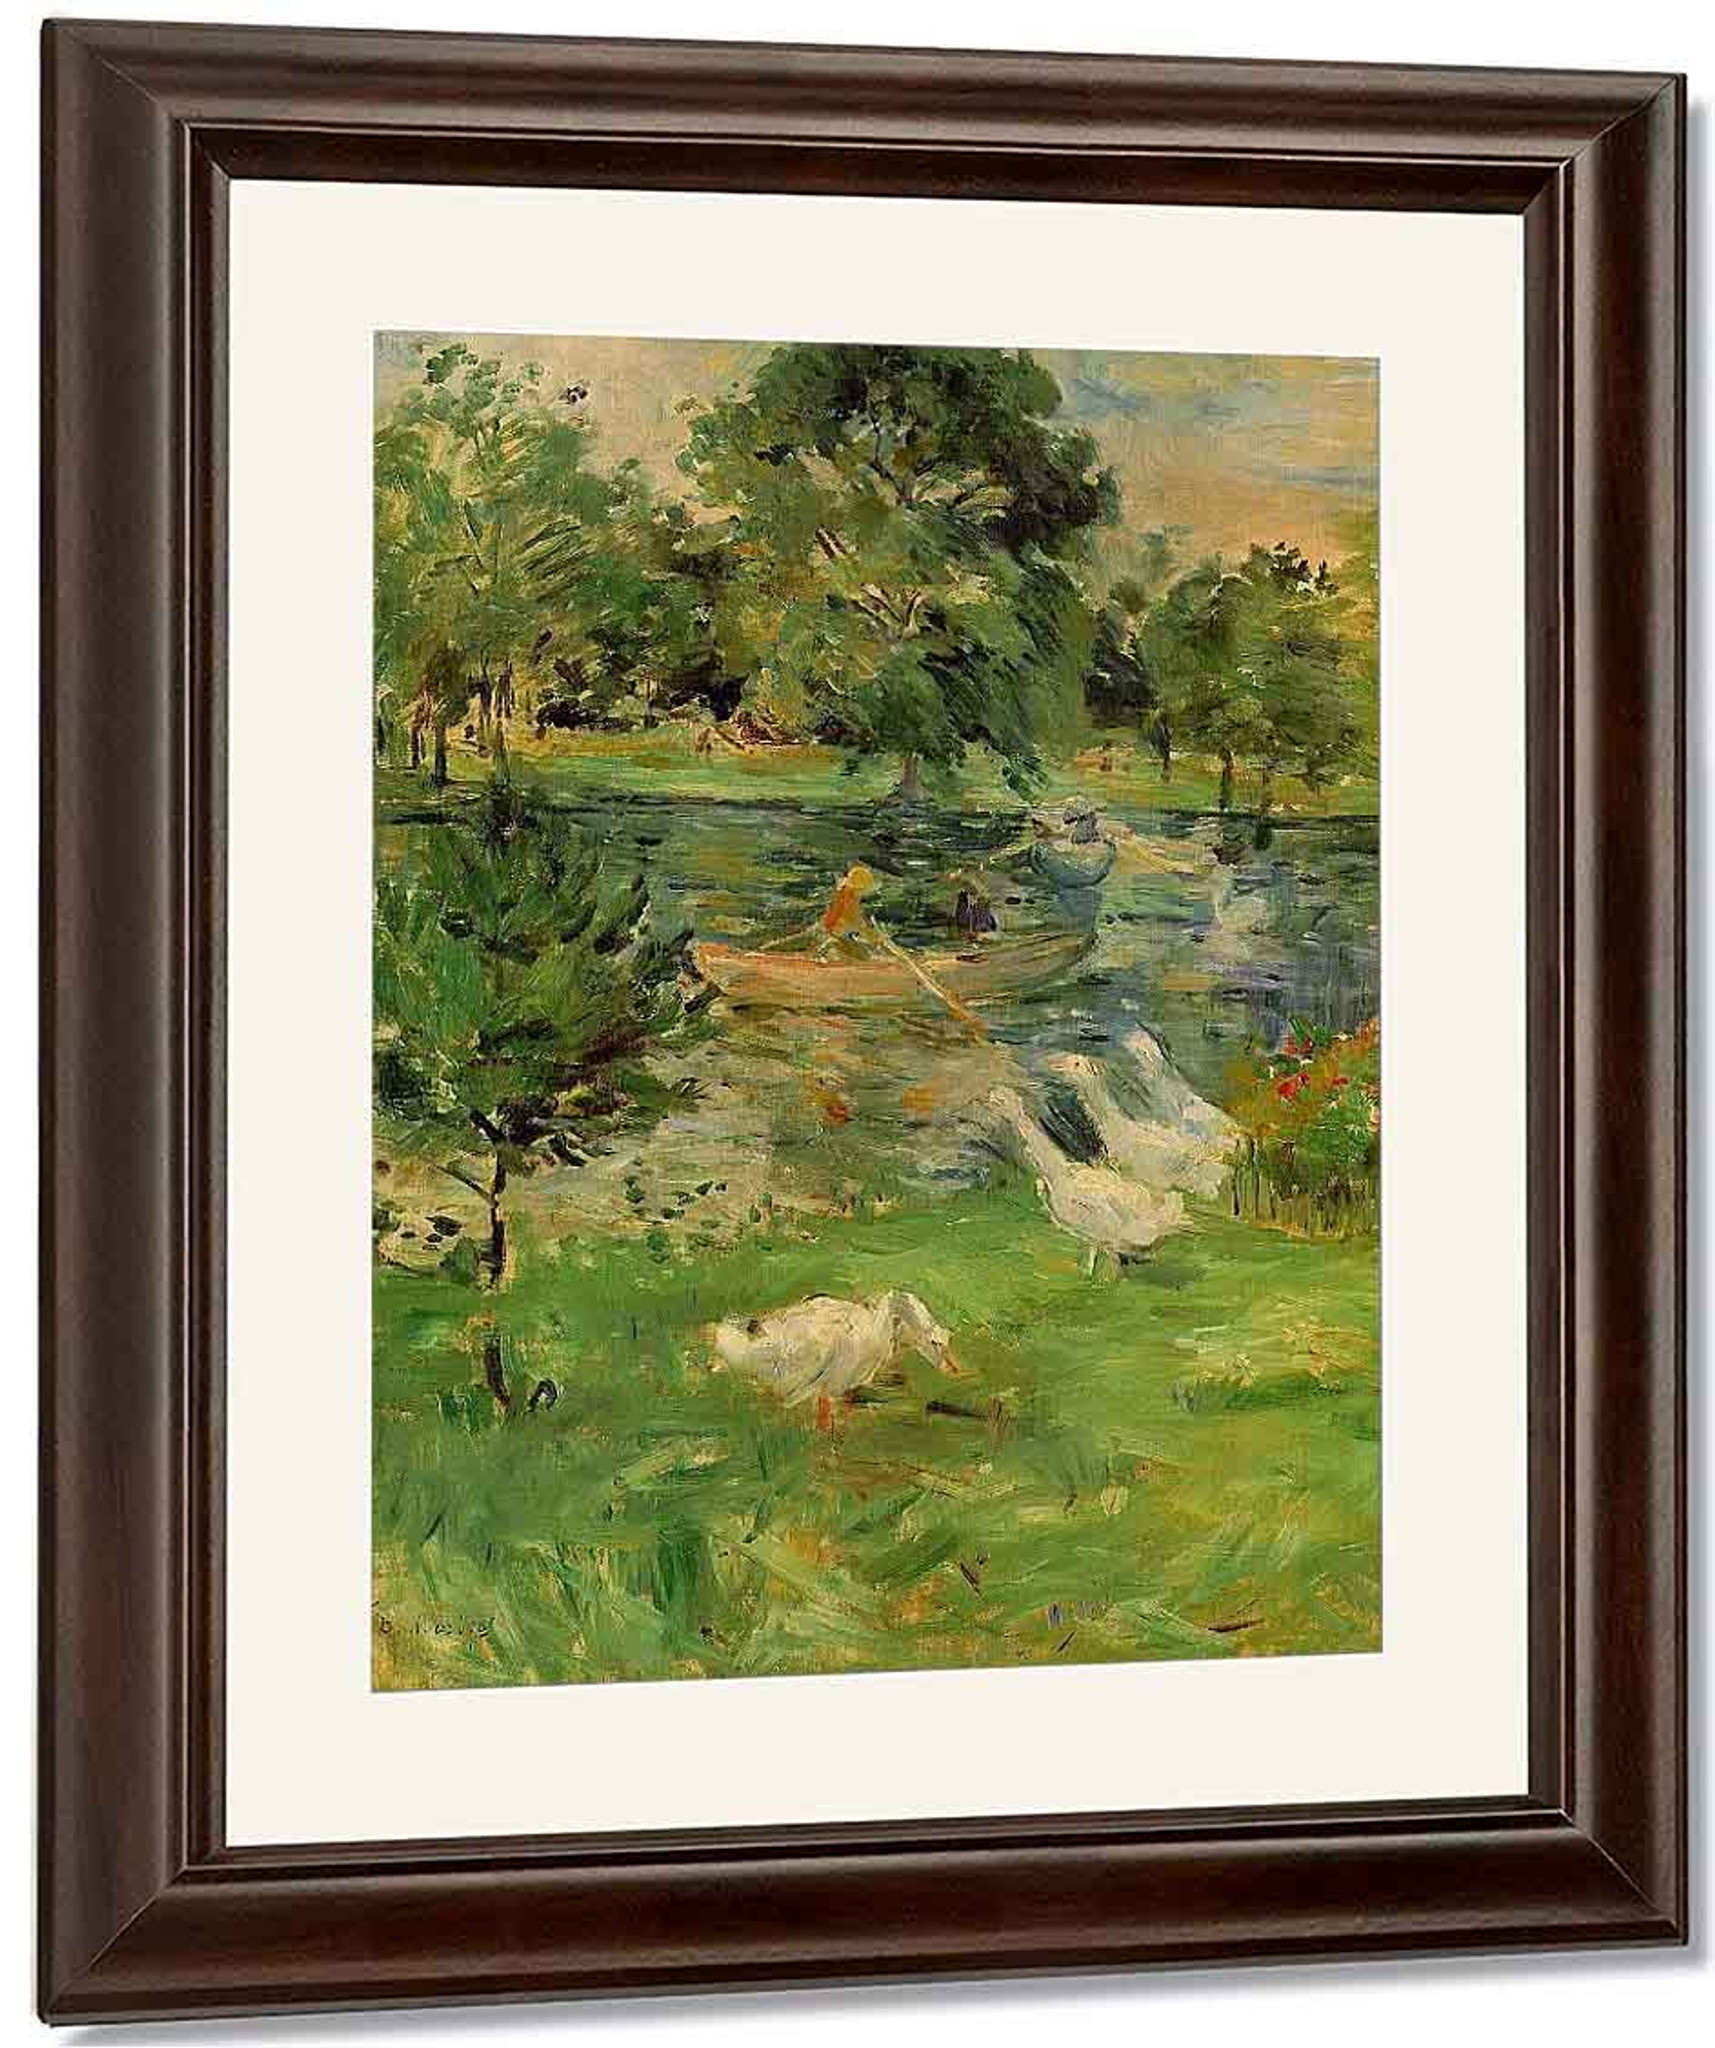 Girls in a boat with geese by Berthe Morisot Giclee Reproduction on Canvas